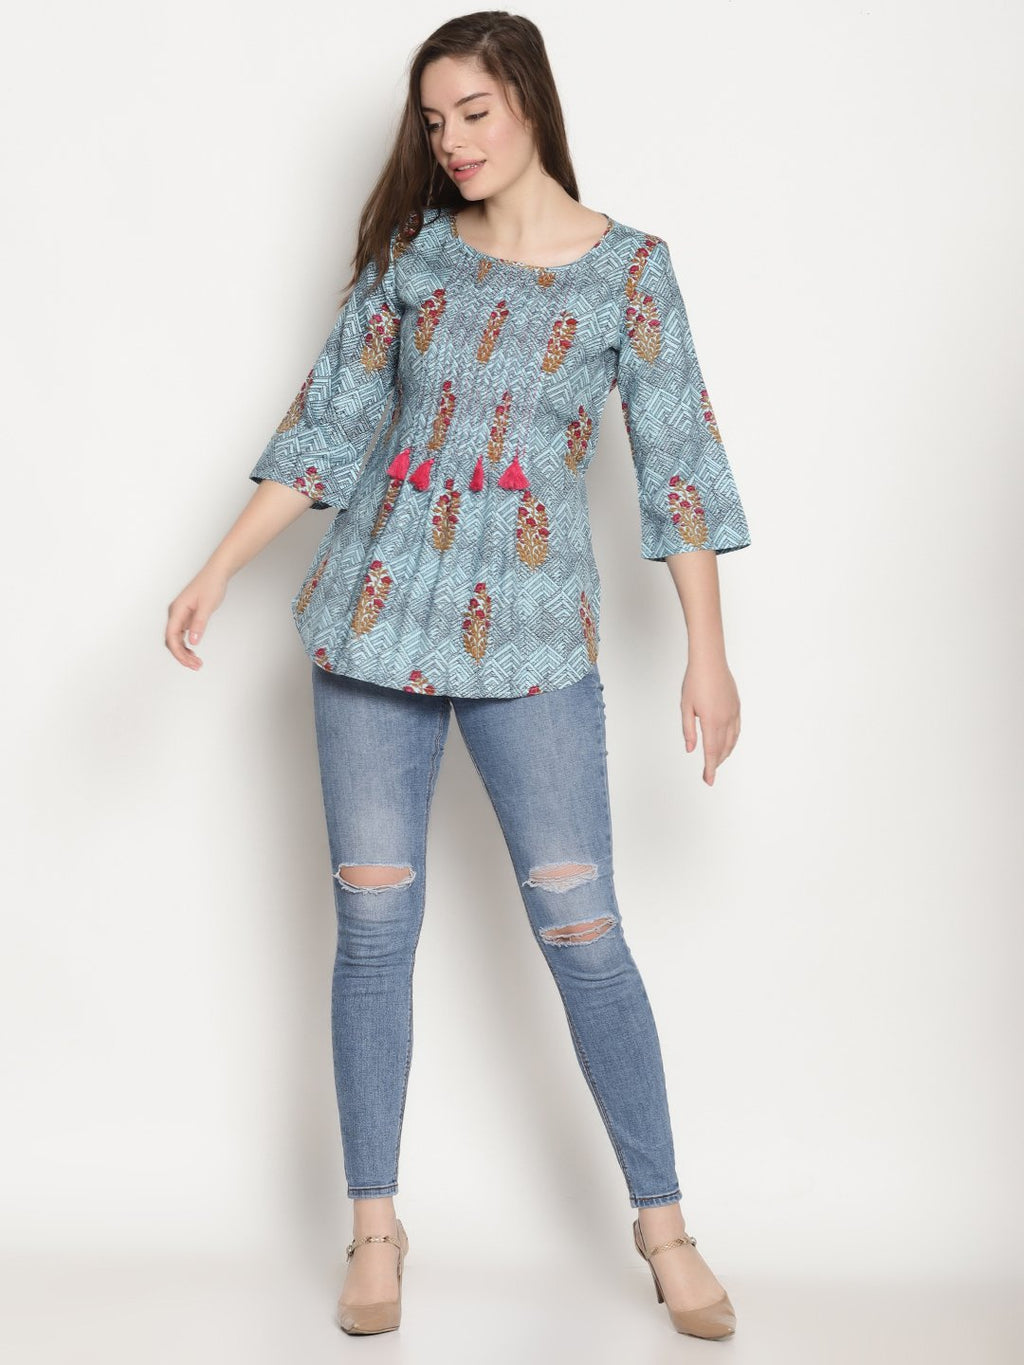 Blue Printed Tasseled Top | Untung